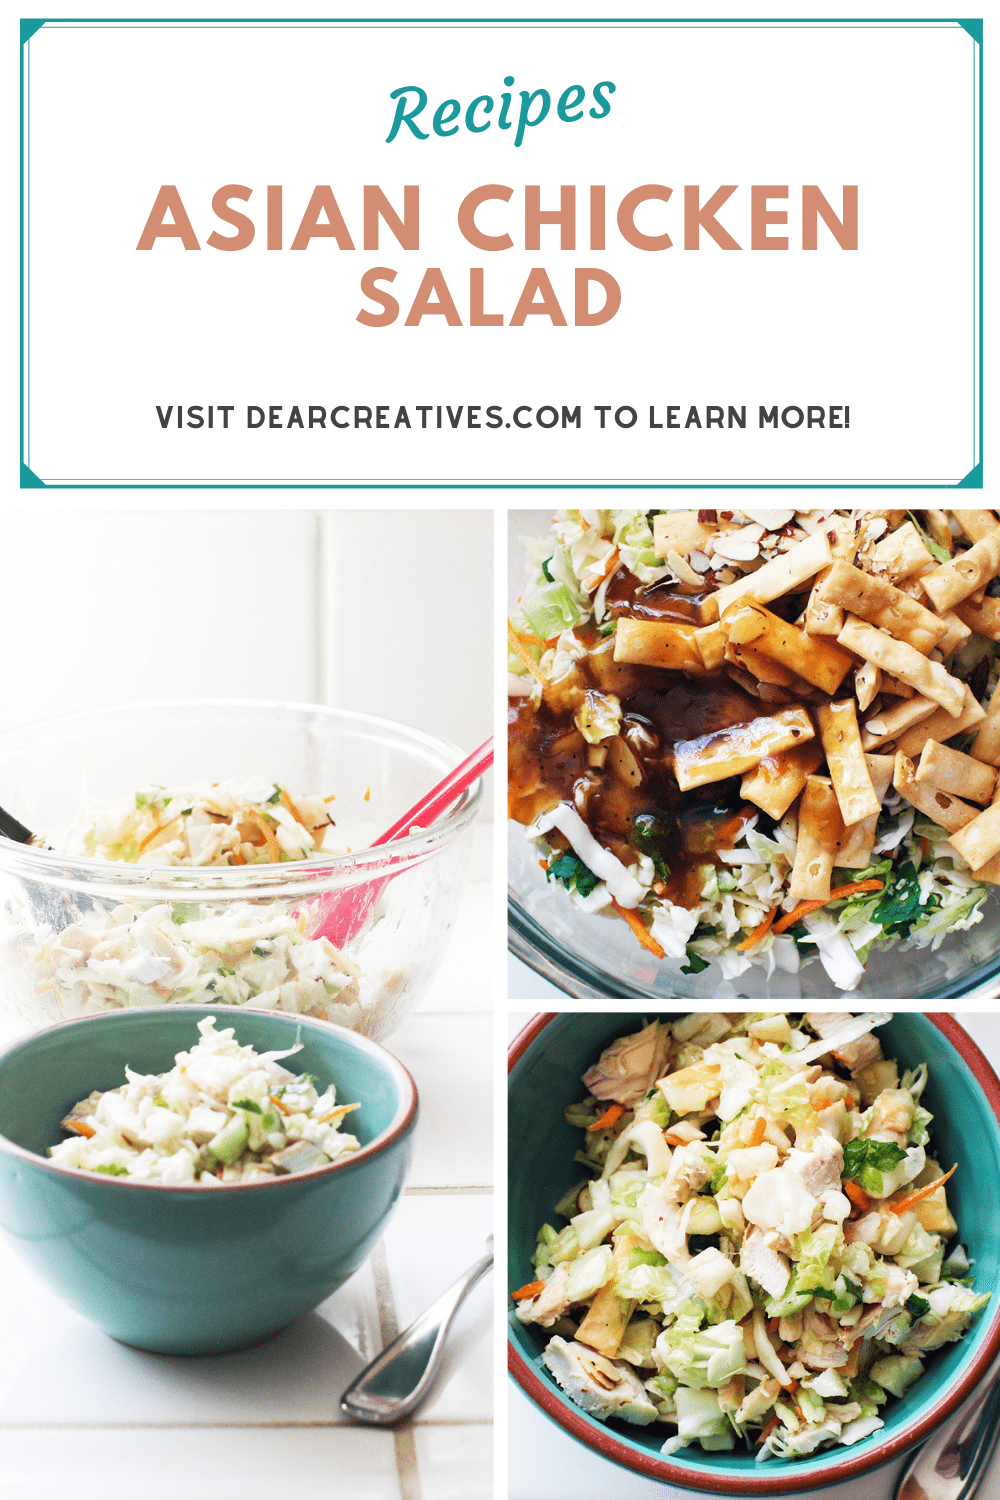 Asian Chicken Salad In 15 Minutes!